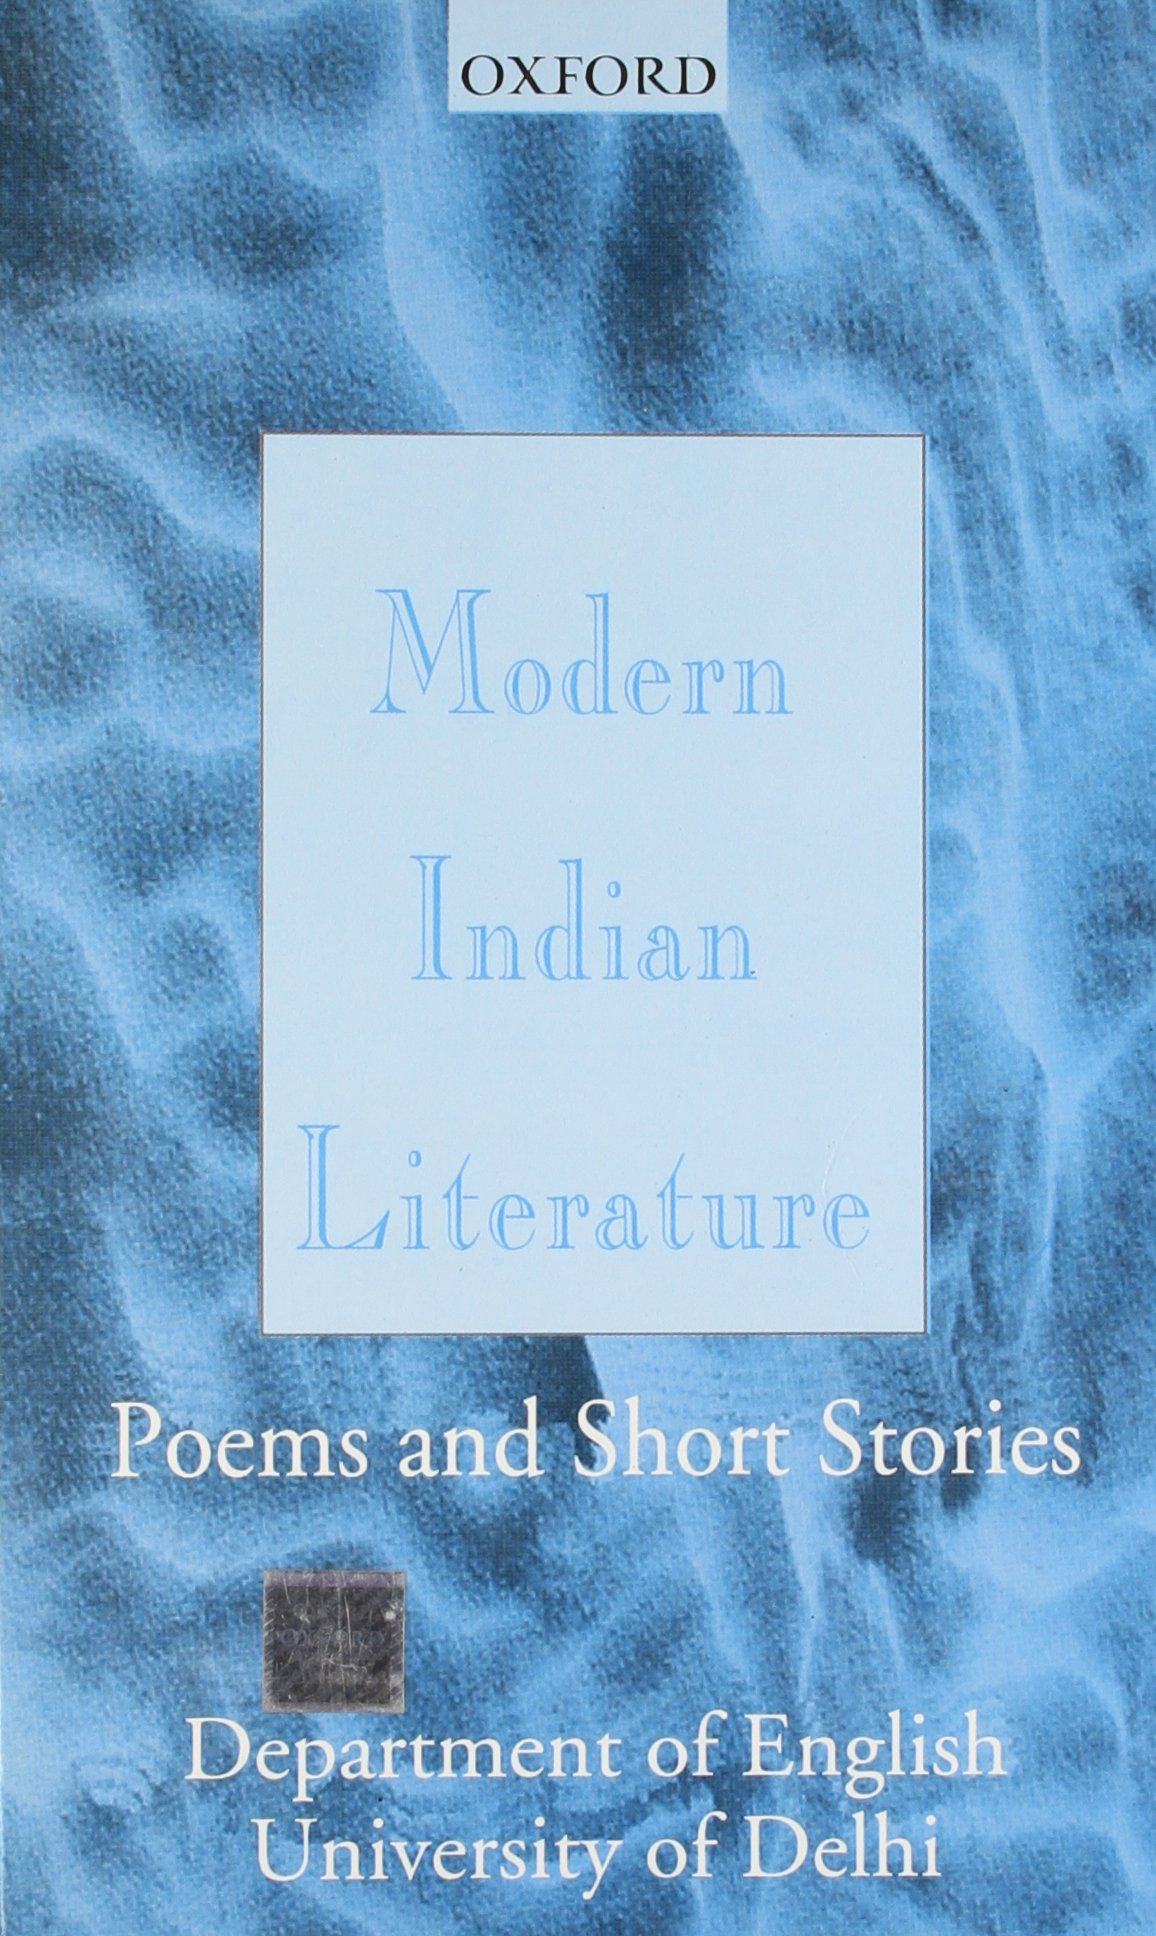 modern indian english poetry an overview essay English drama of the early modern period might have been alive and well, thanks in part to the work of late-victorian authors like oscar wilde and george bernard shaw, but it would not become a true progressive force until it began to reflect the countercultural movements of the 1950s and 1960s.